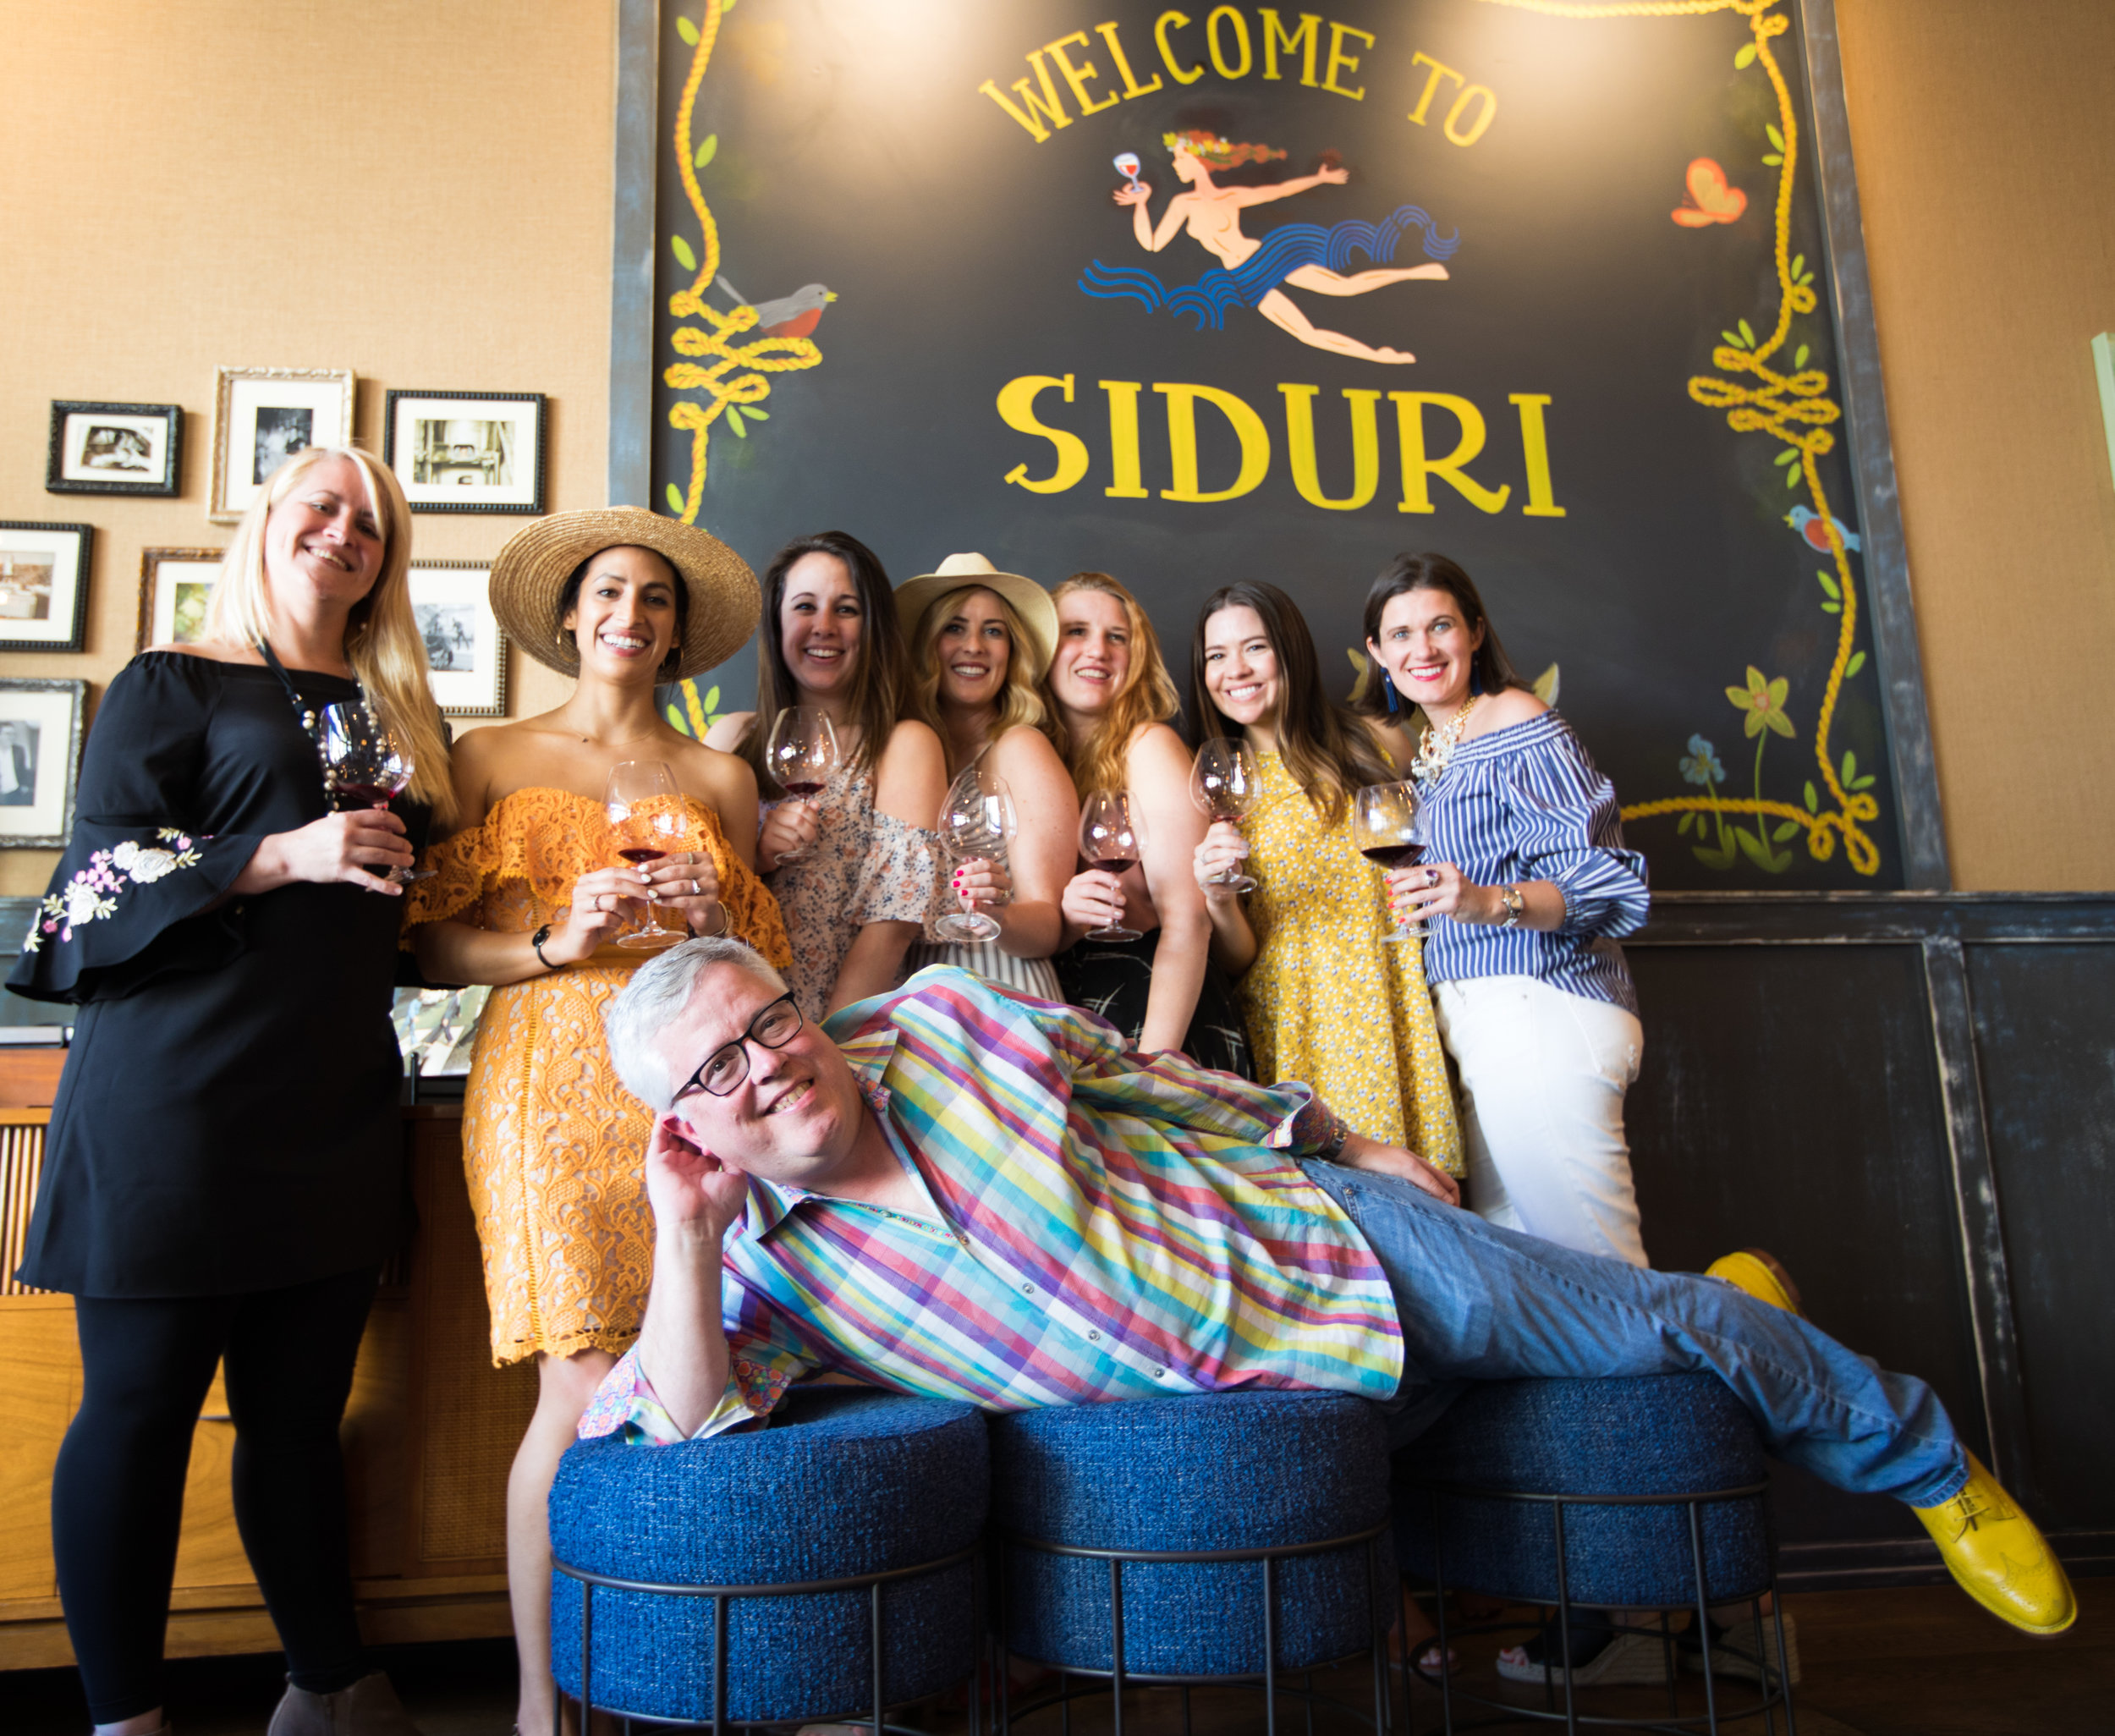 Siduri Tasting Room with Winemaker Adam Lee